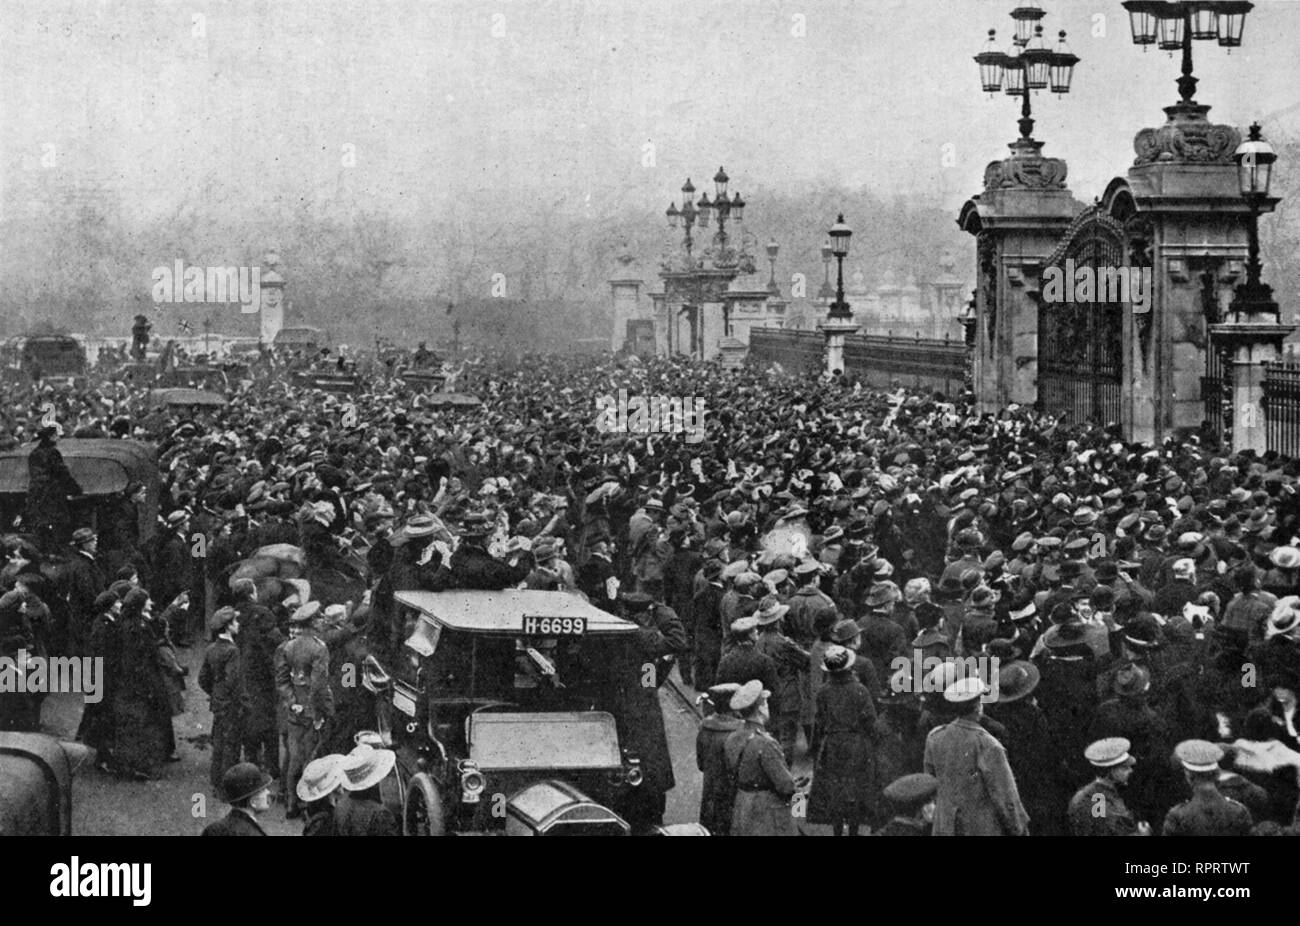 The crowed outside Buckingham Palace on Armistice Day, 11th November 1918. The first official Armistice Day events were held in the grounds of Buckingham Palace on the morning of 11th November 1919. Stock Photo